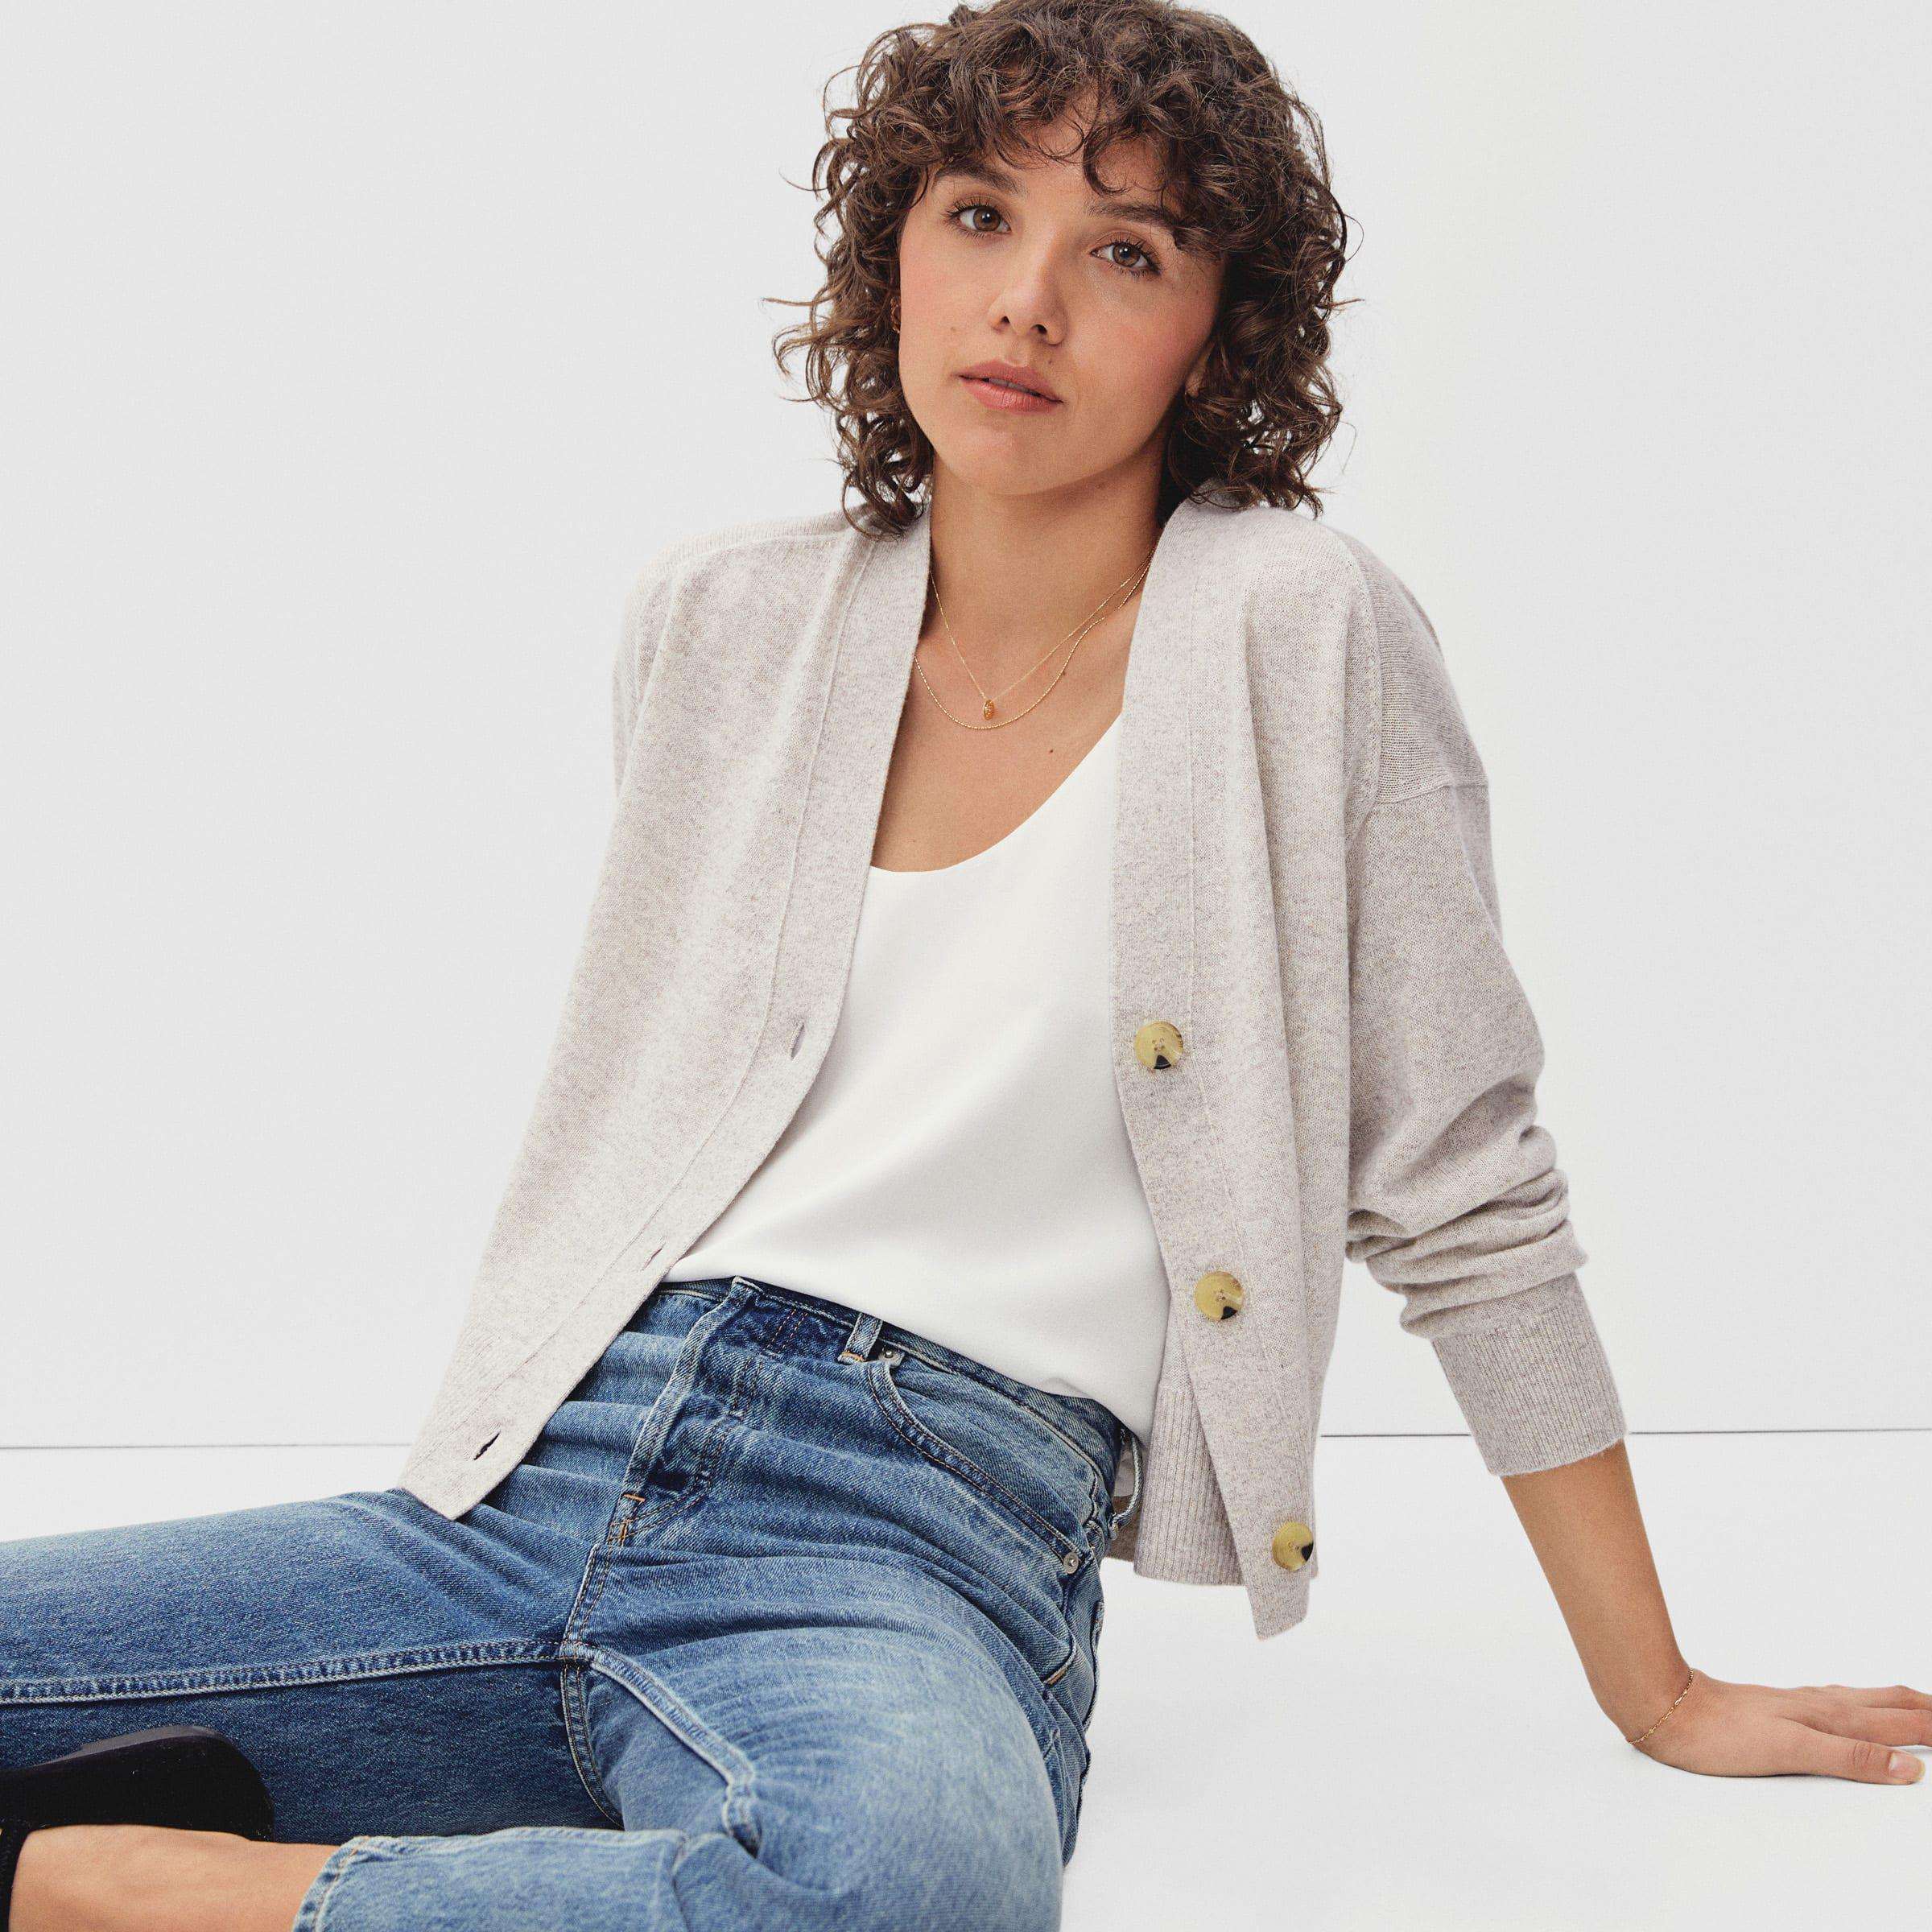 The Cropped Cashmere Cardigan